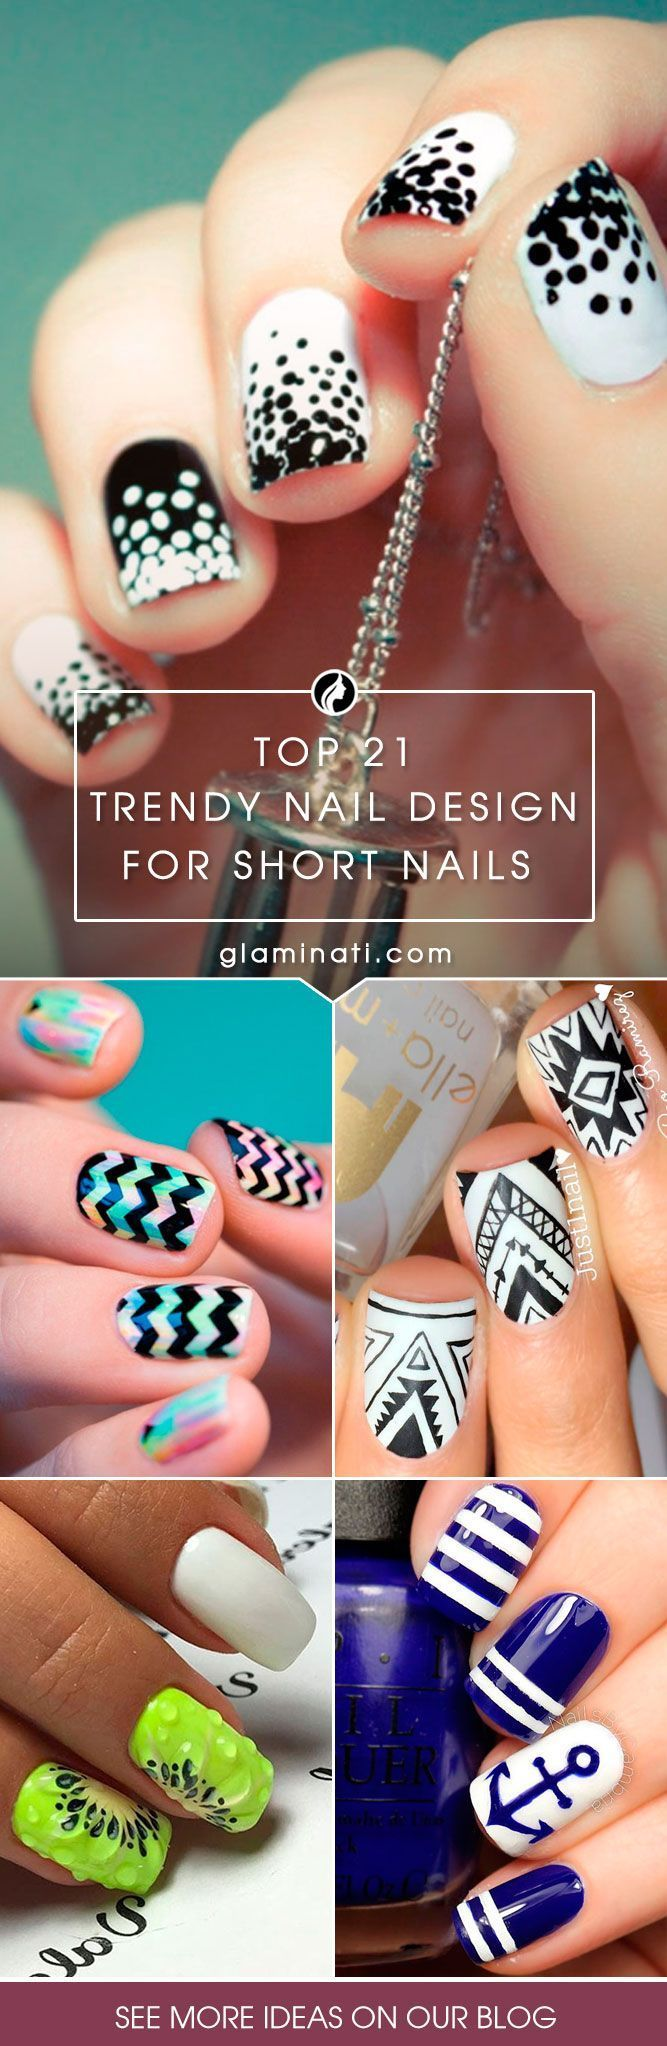 Check Out These Do It Yourself Trendy Nail Designs For Short Nails